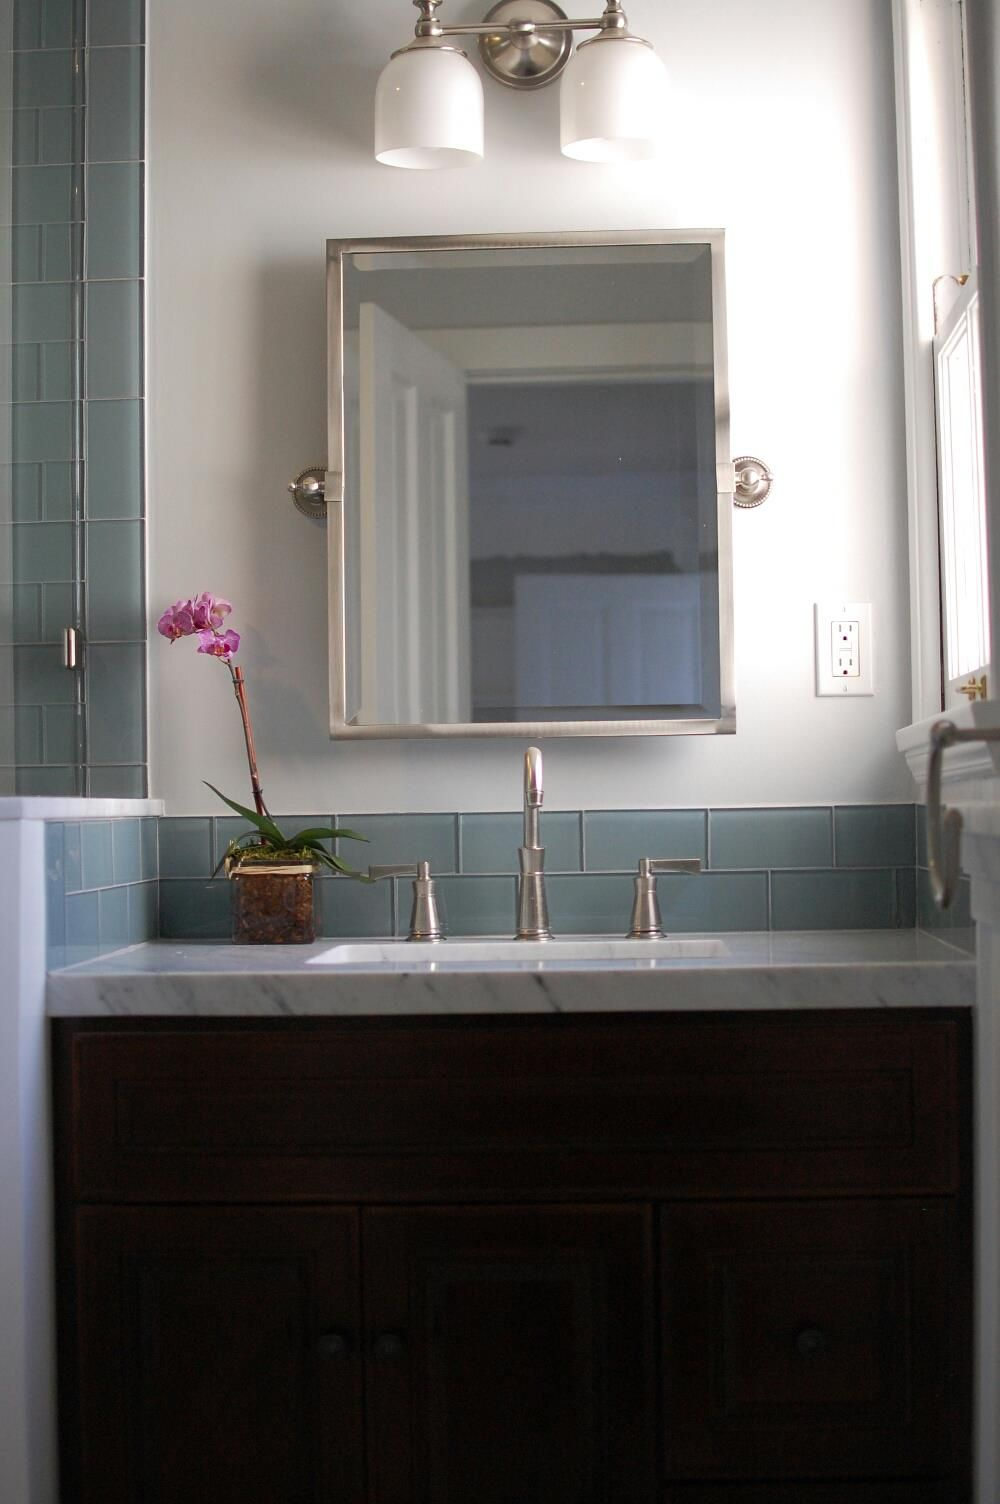 Ocean Glass Subway Tile. Subway Tile BathroomsSubway Tile  BacksplashBacksplash ...